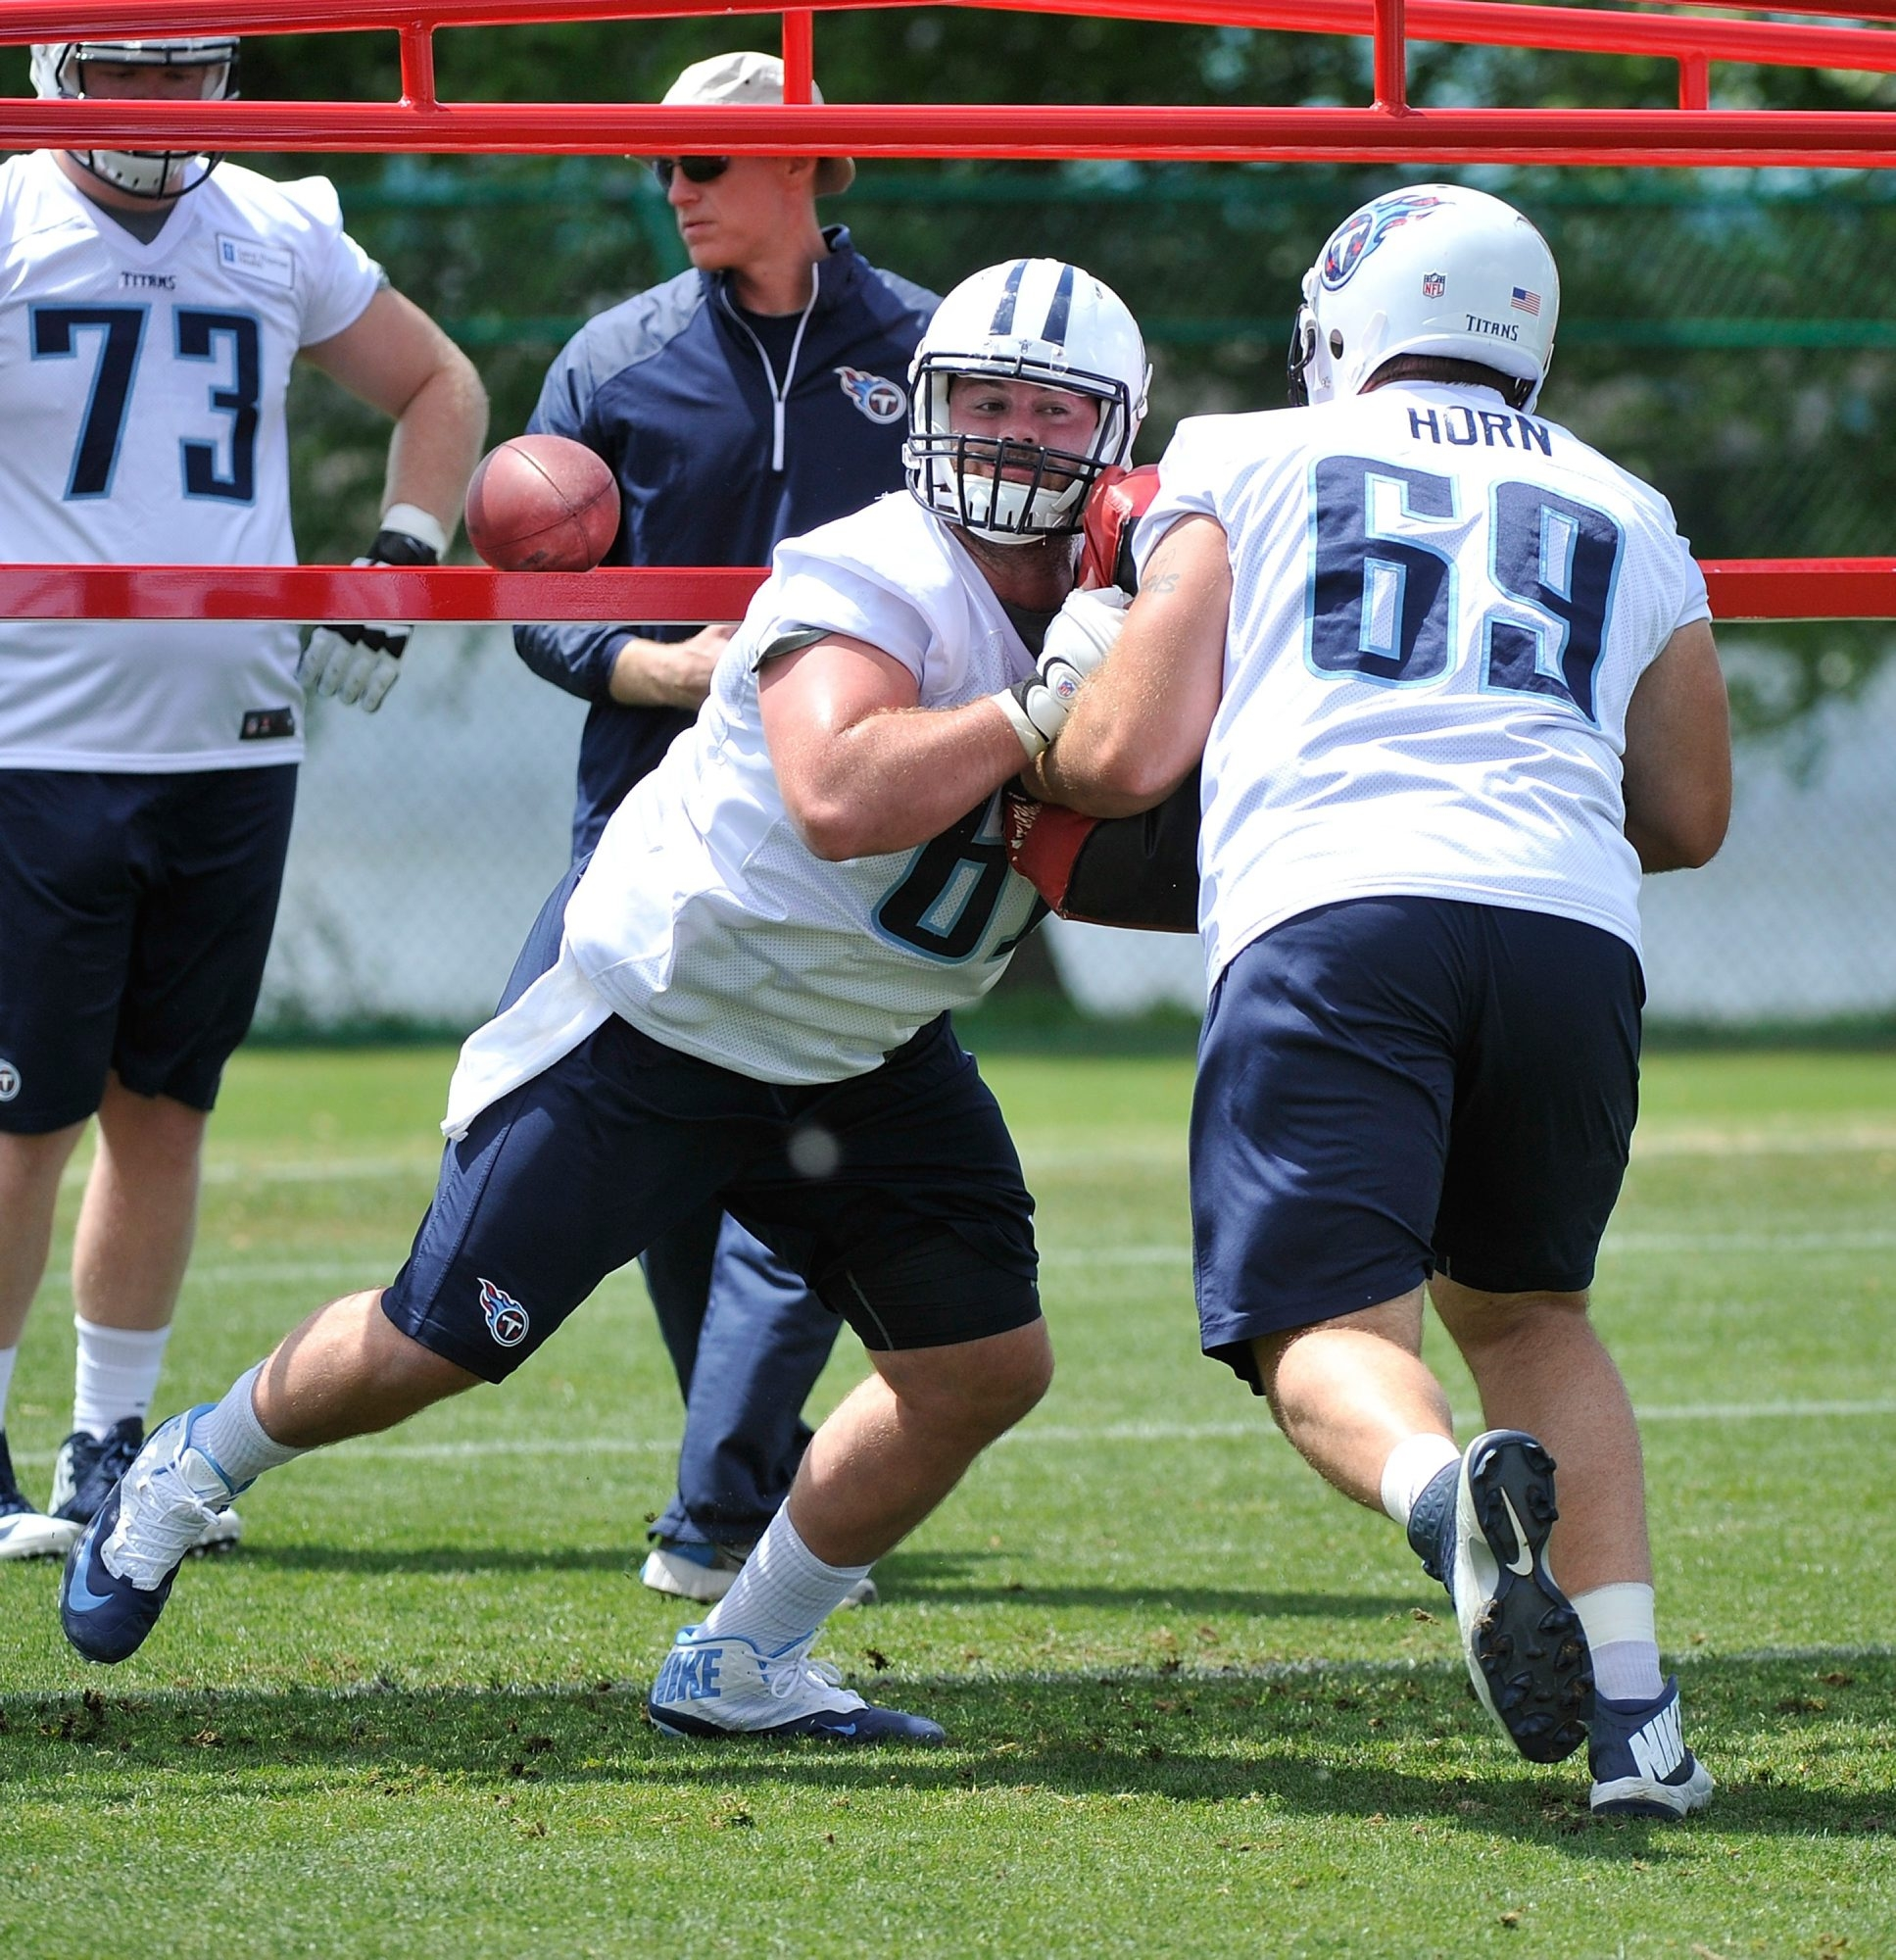 Buffalo signed former Tennessee Titans center Gabe Ikard to the 53-man roster. The Bills still have one more player to sign to fill the roster.